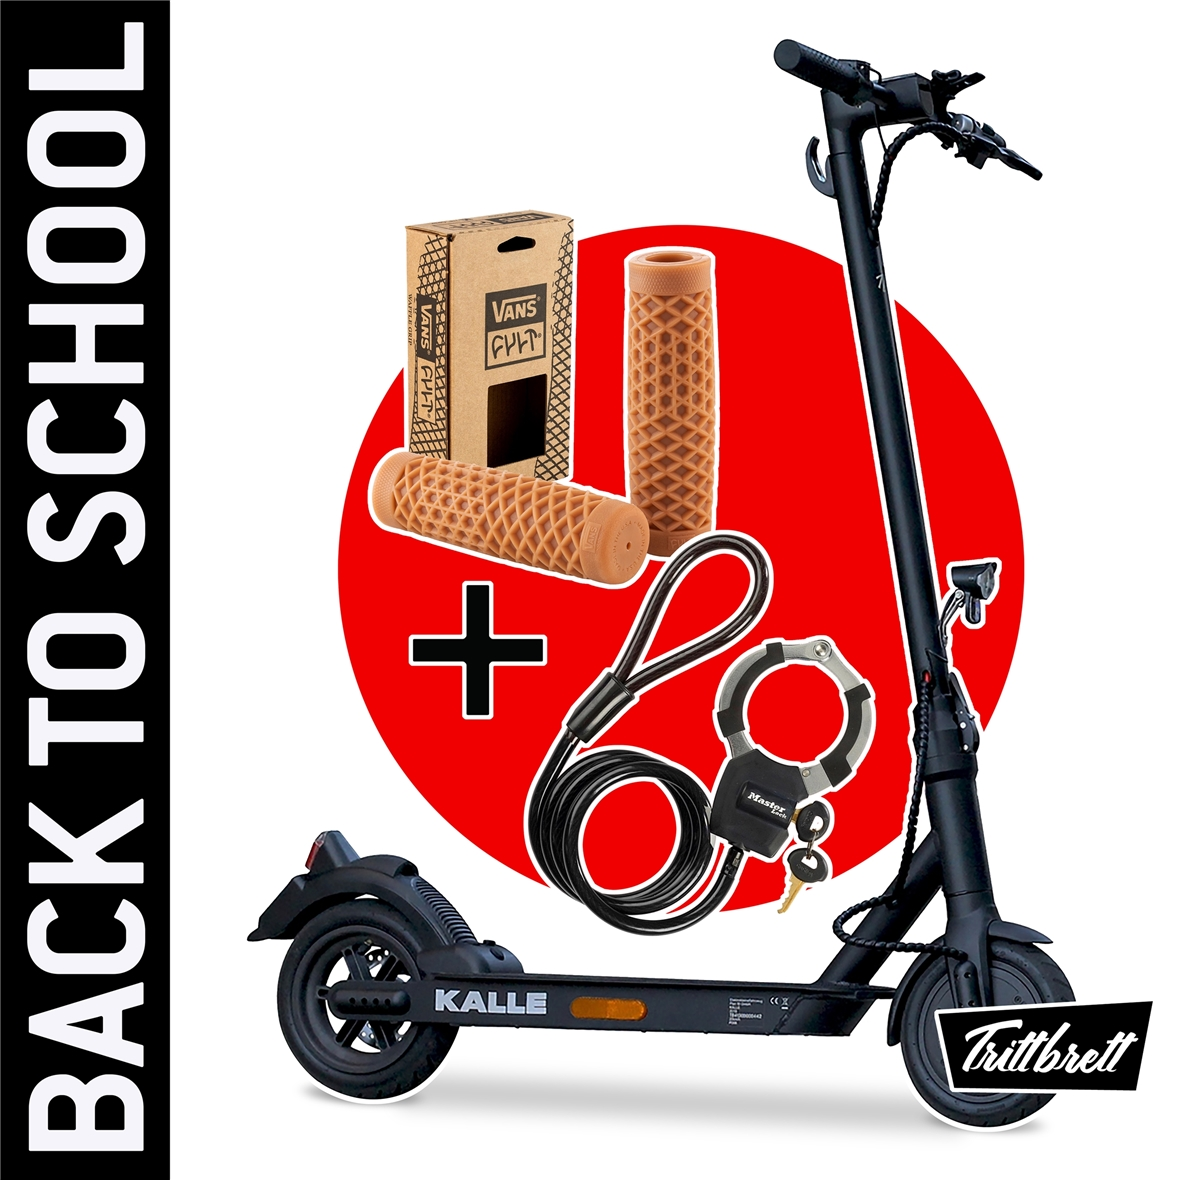 """Product Image for 'E-Scooter """"BACK TO SCHOOL"""" Bundle TRITTBRETT Kalle with (light brown) VANS grips and Materlock StreetcuffTitle'"""